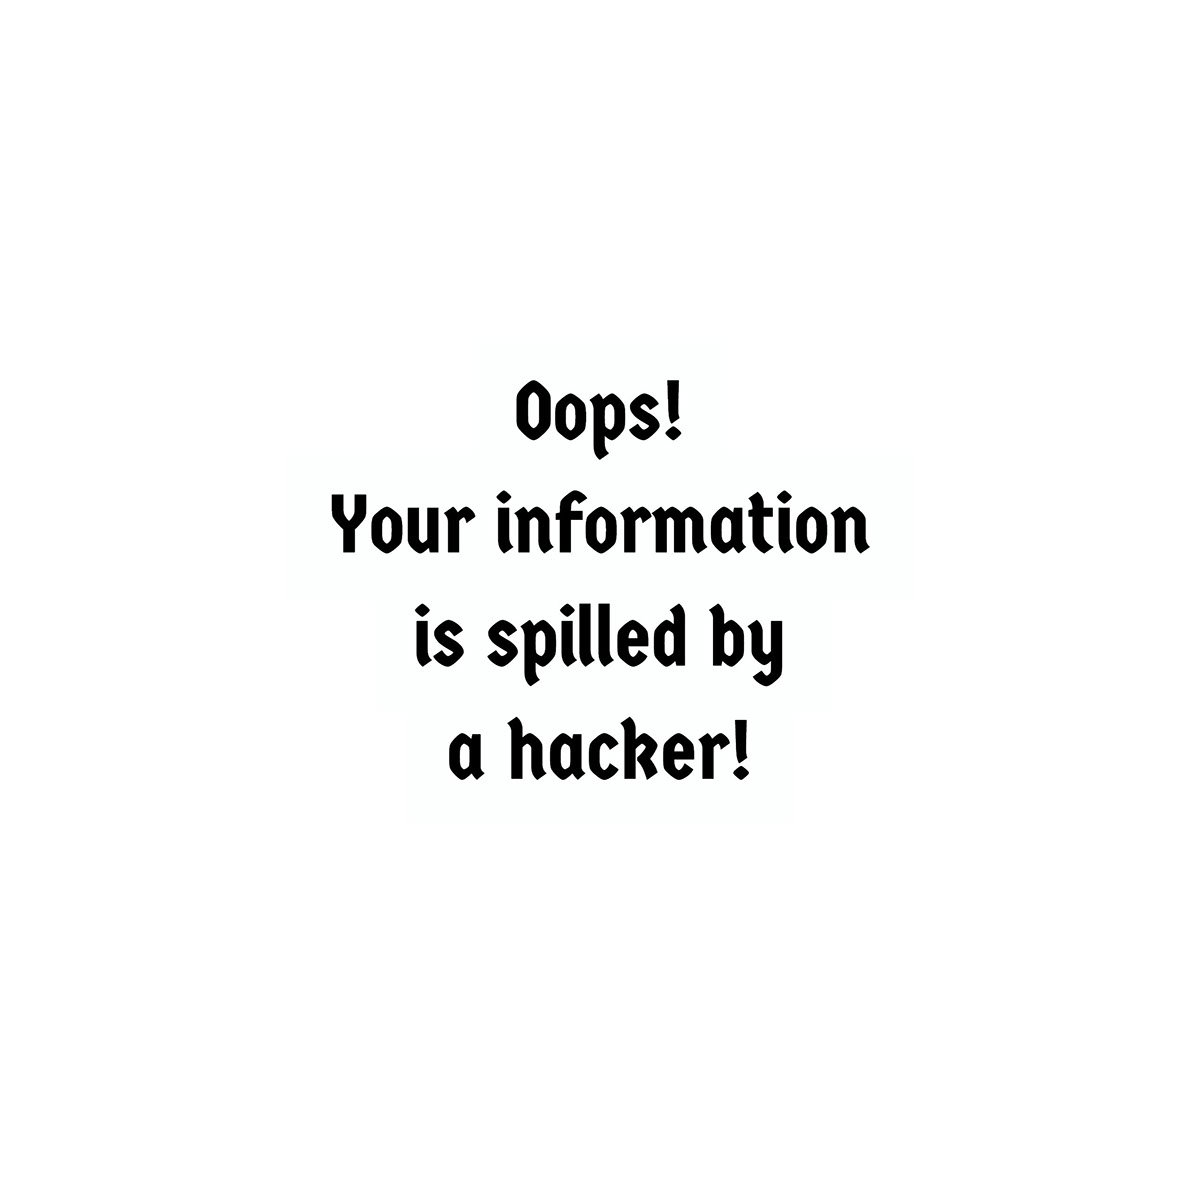 Oops! Your information is spilled by a hacker!